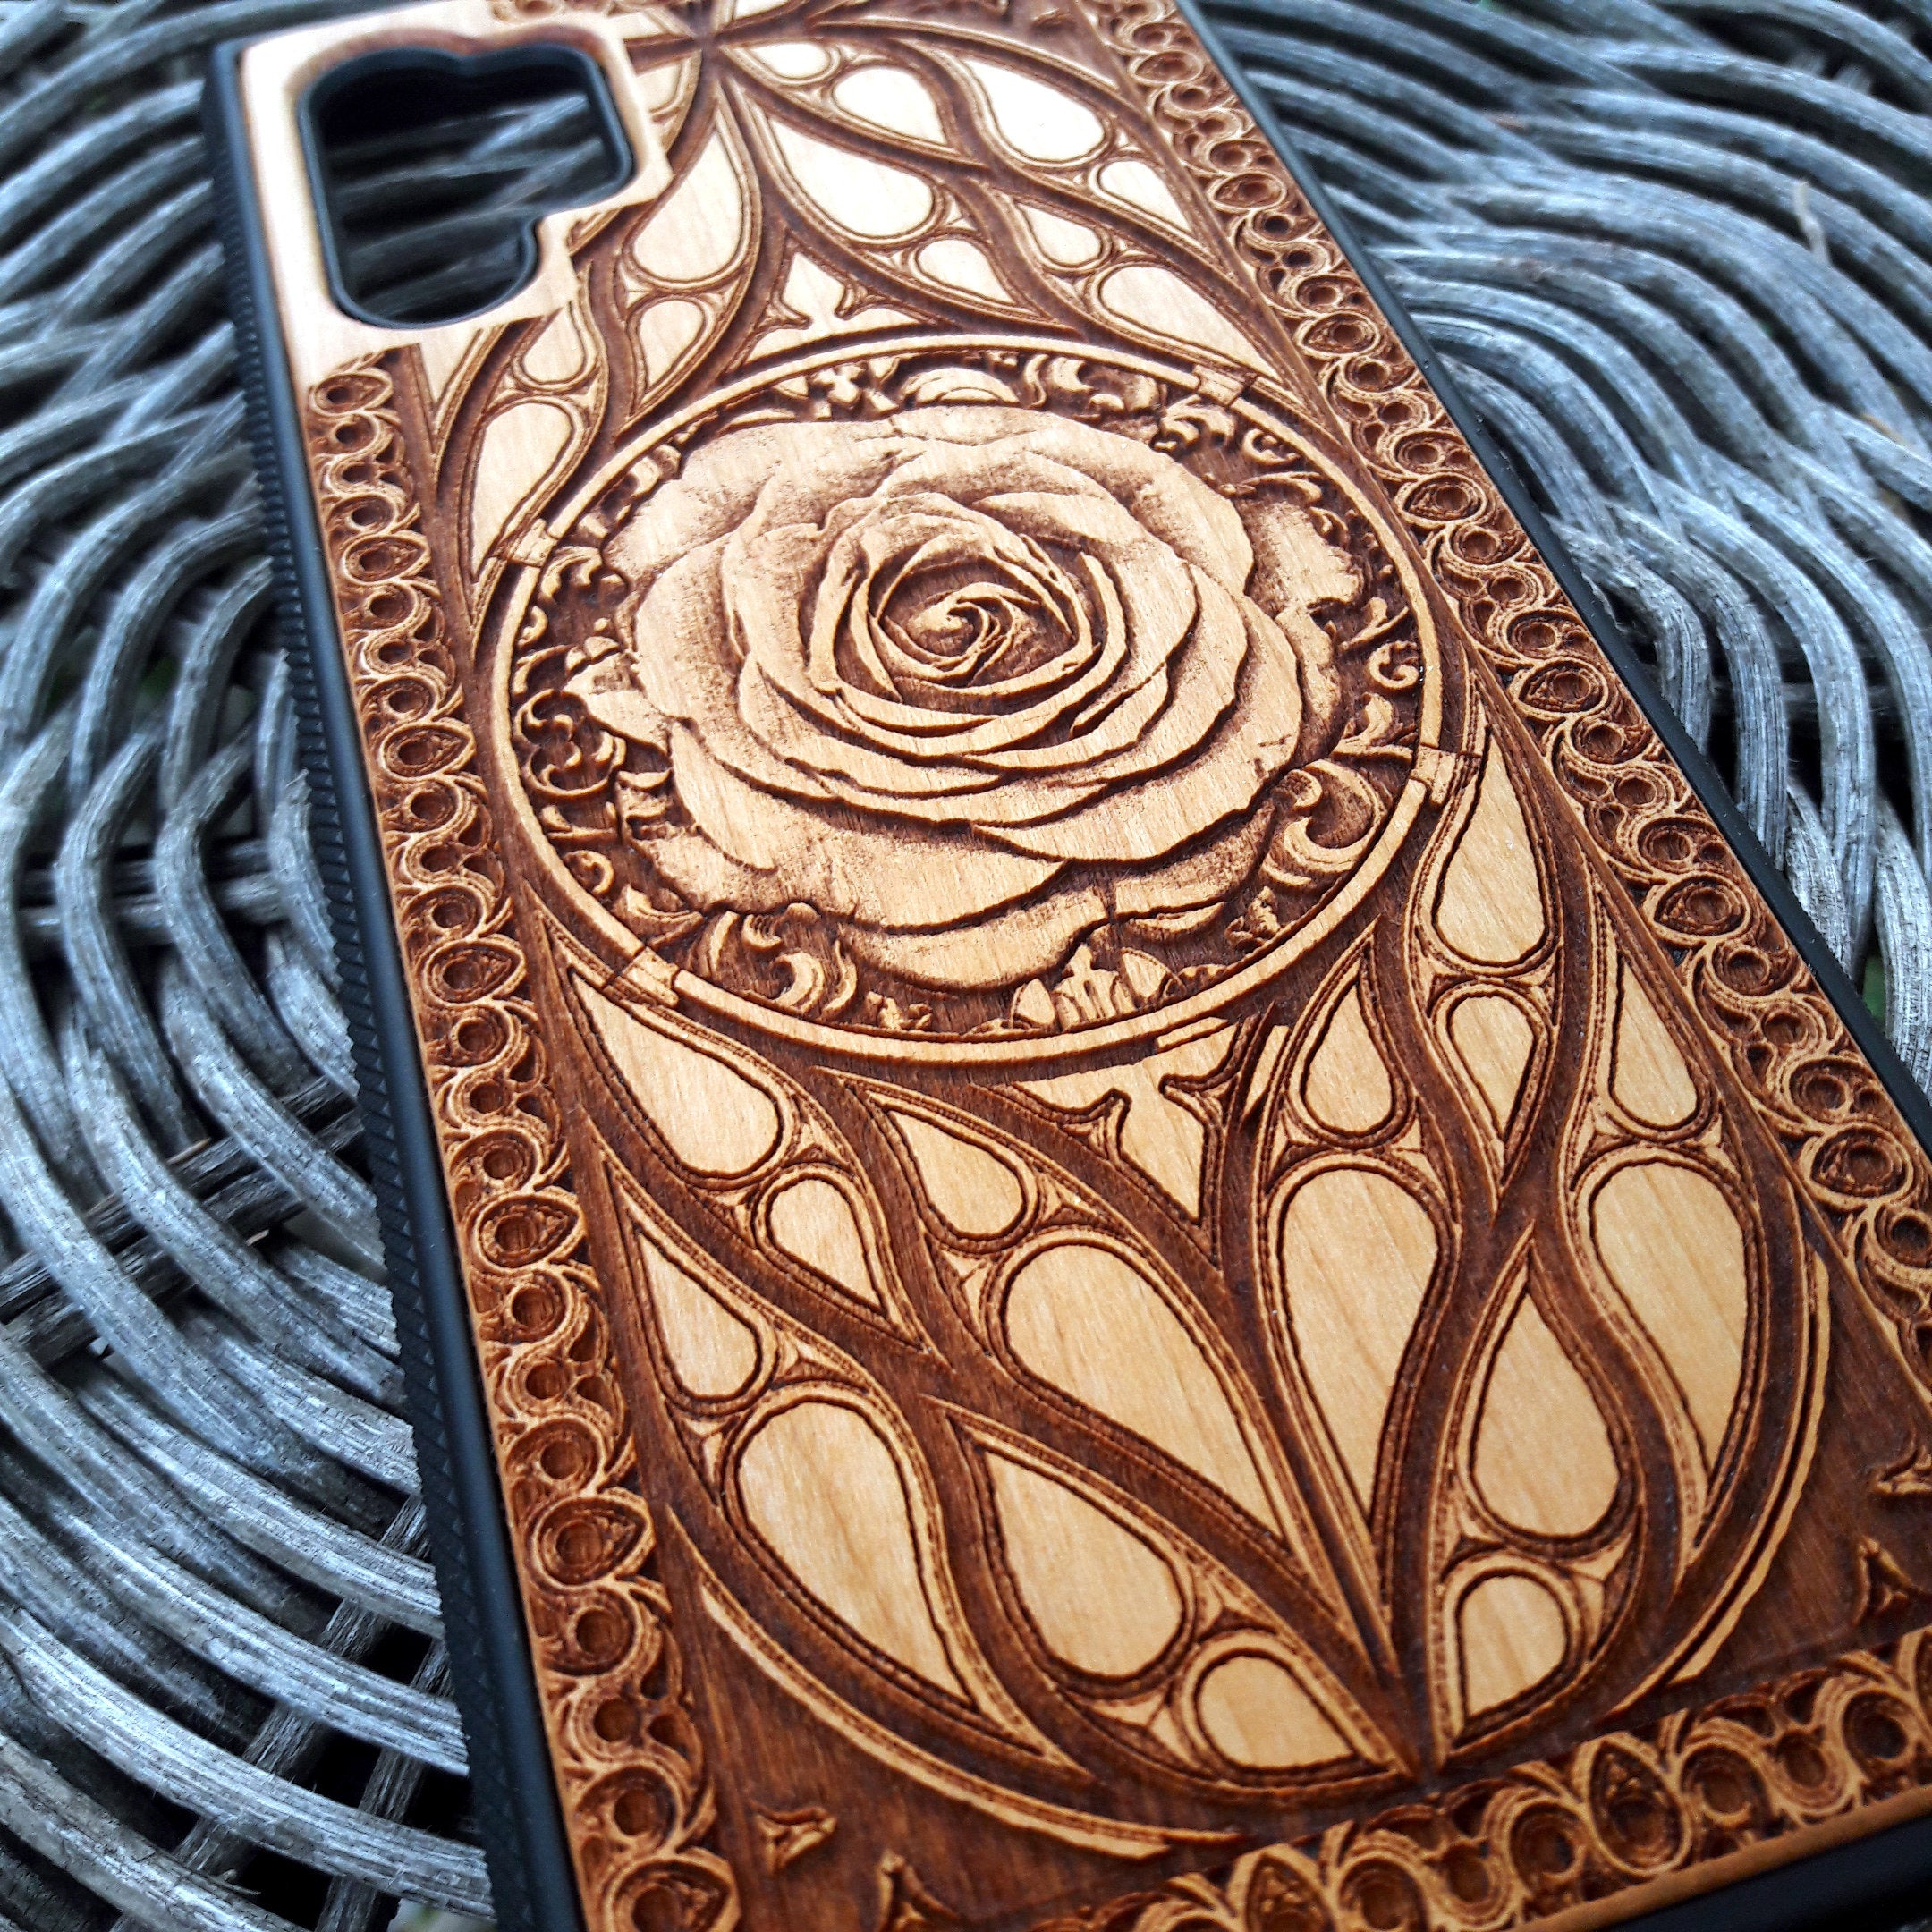 Rose iPhone 11 Case for Her - Galaxy S20 Ultra Plus Cell Cover - Unique Wood Phone Case for Women - Huawei P30 P20 Pro